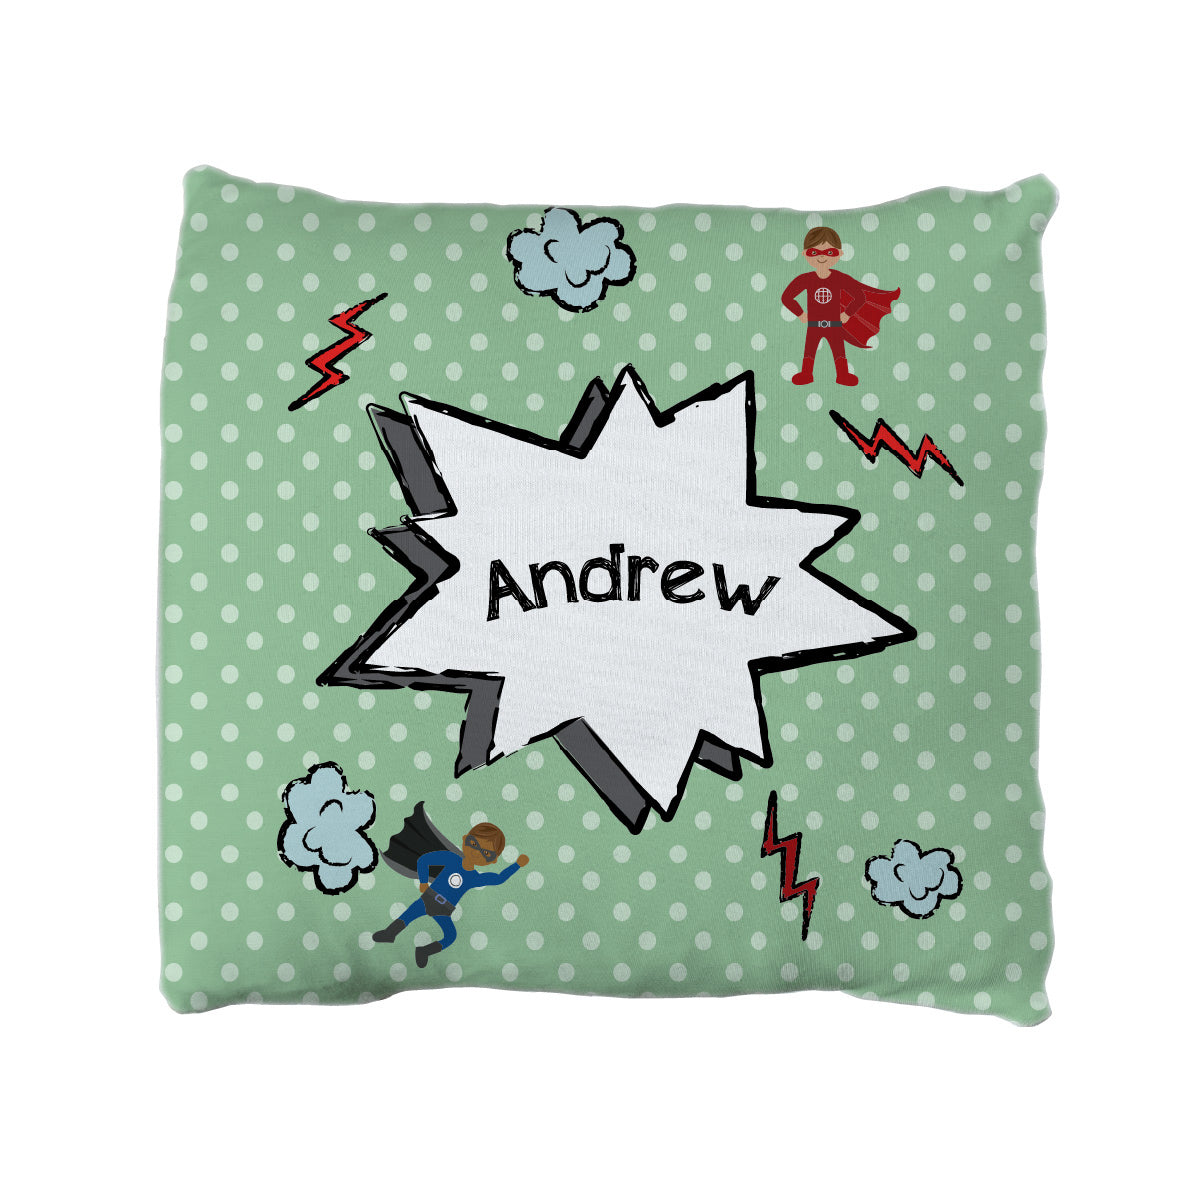 Andrew's Super Heroes | Big Kid Throw Pillow